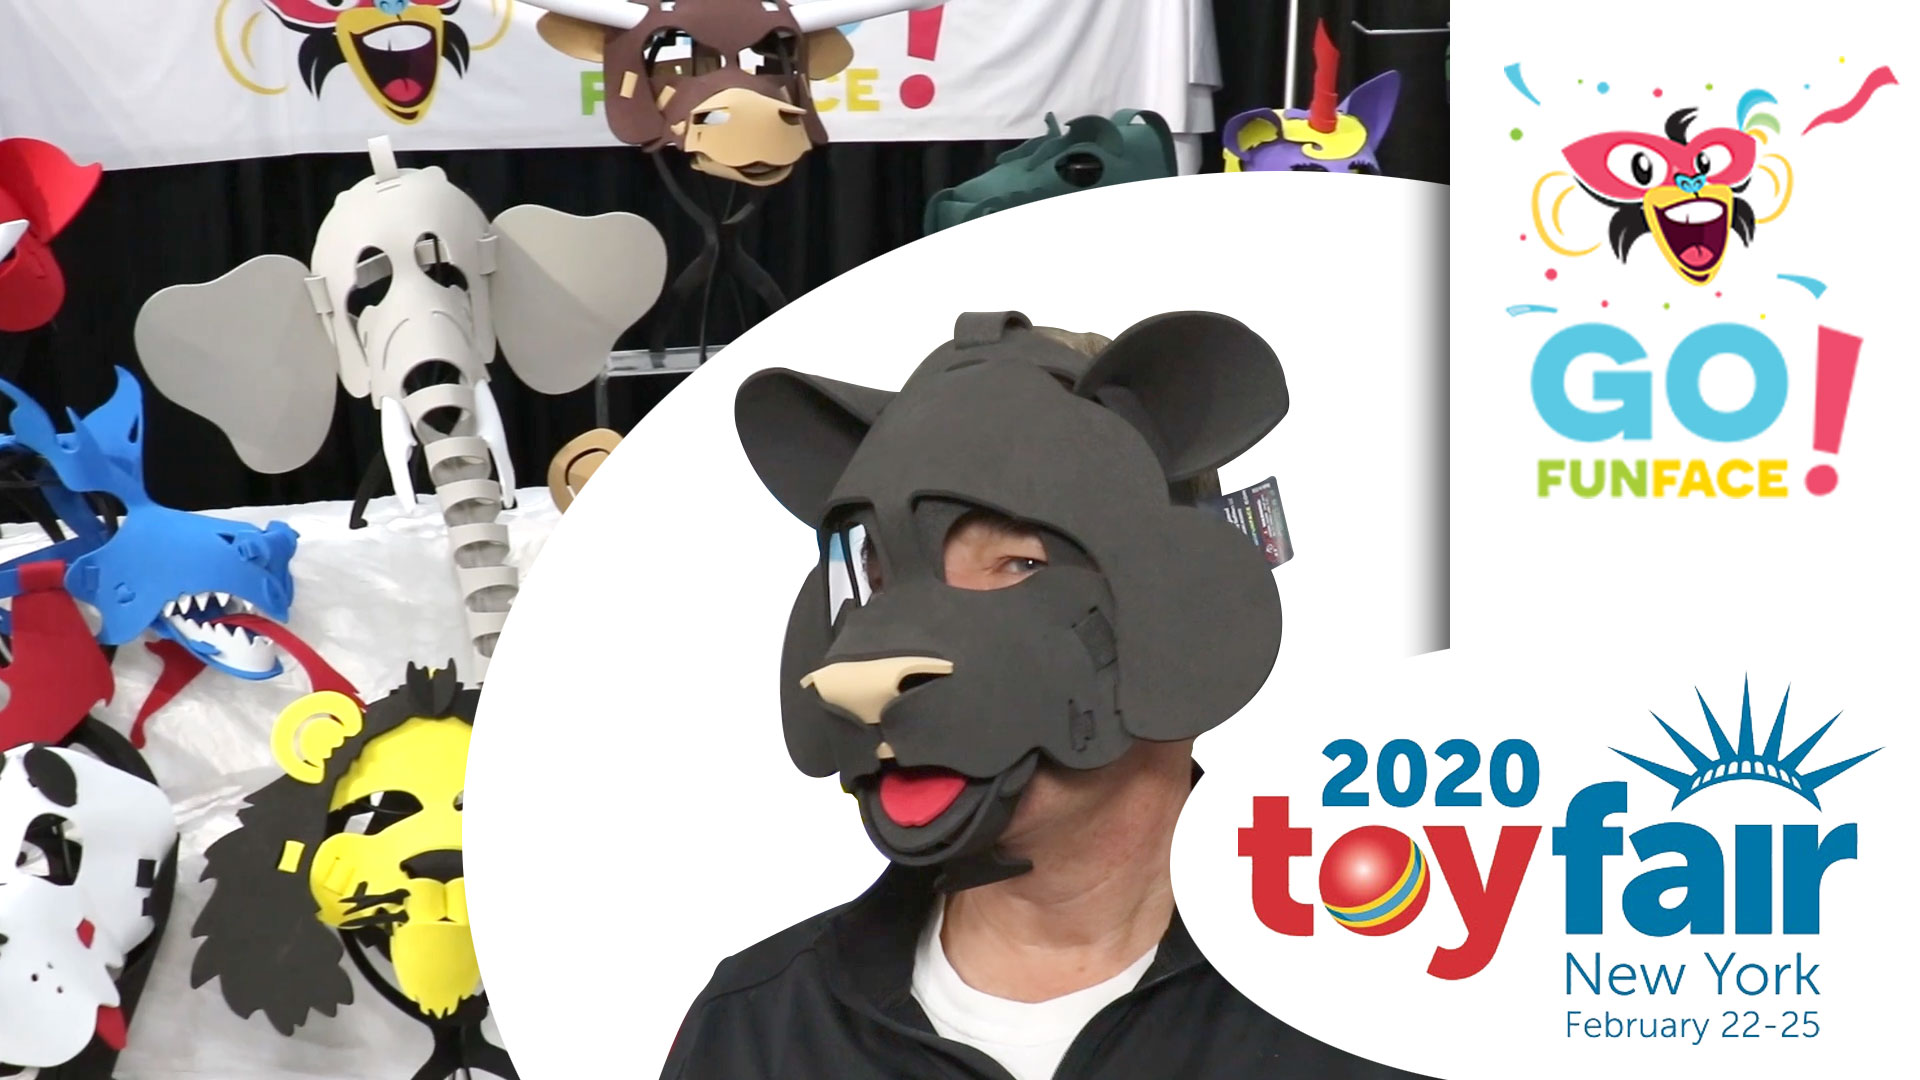 Go Fun Face @ToyFair 2020